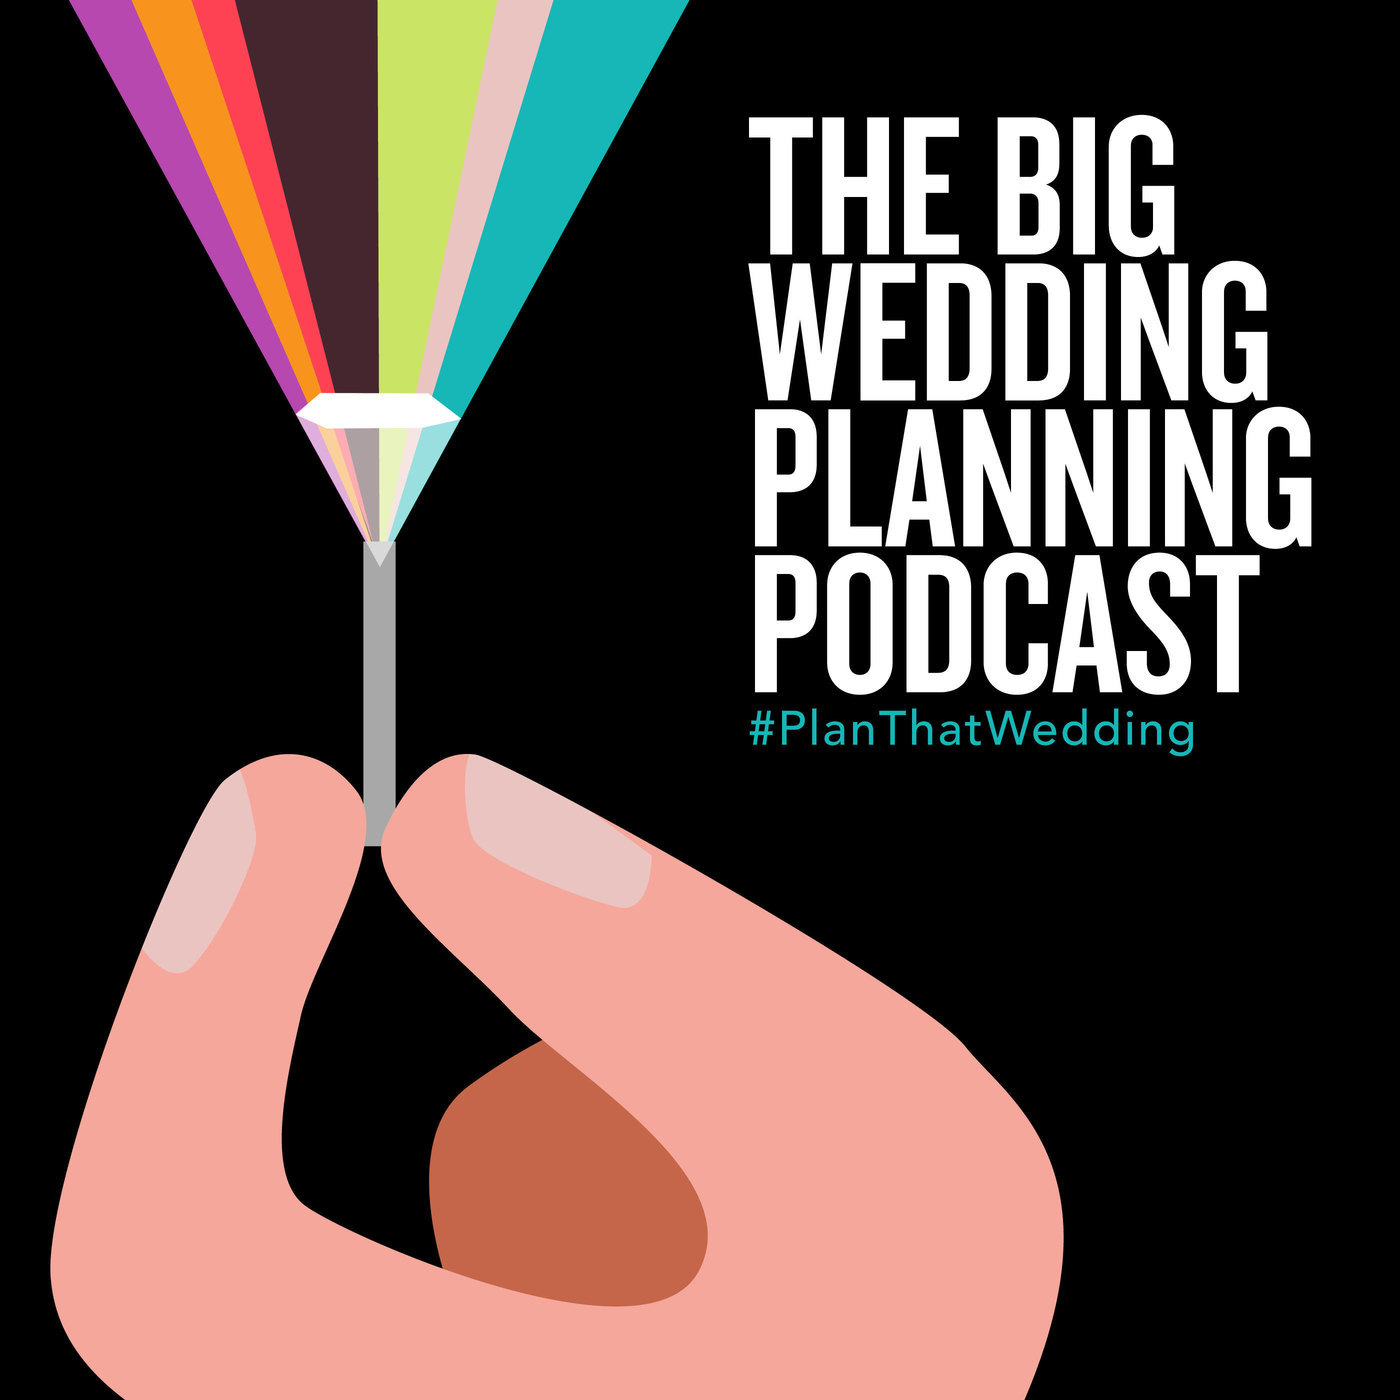 The Big Wedding Planning Podcast: #139 You Ask, We Answer - 17